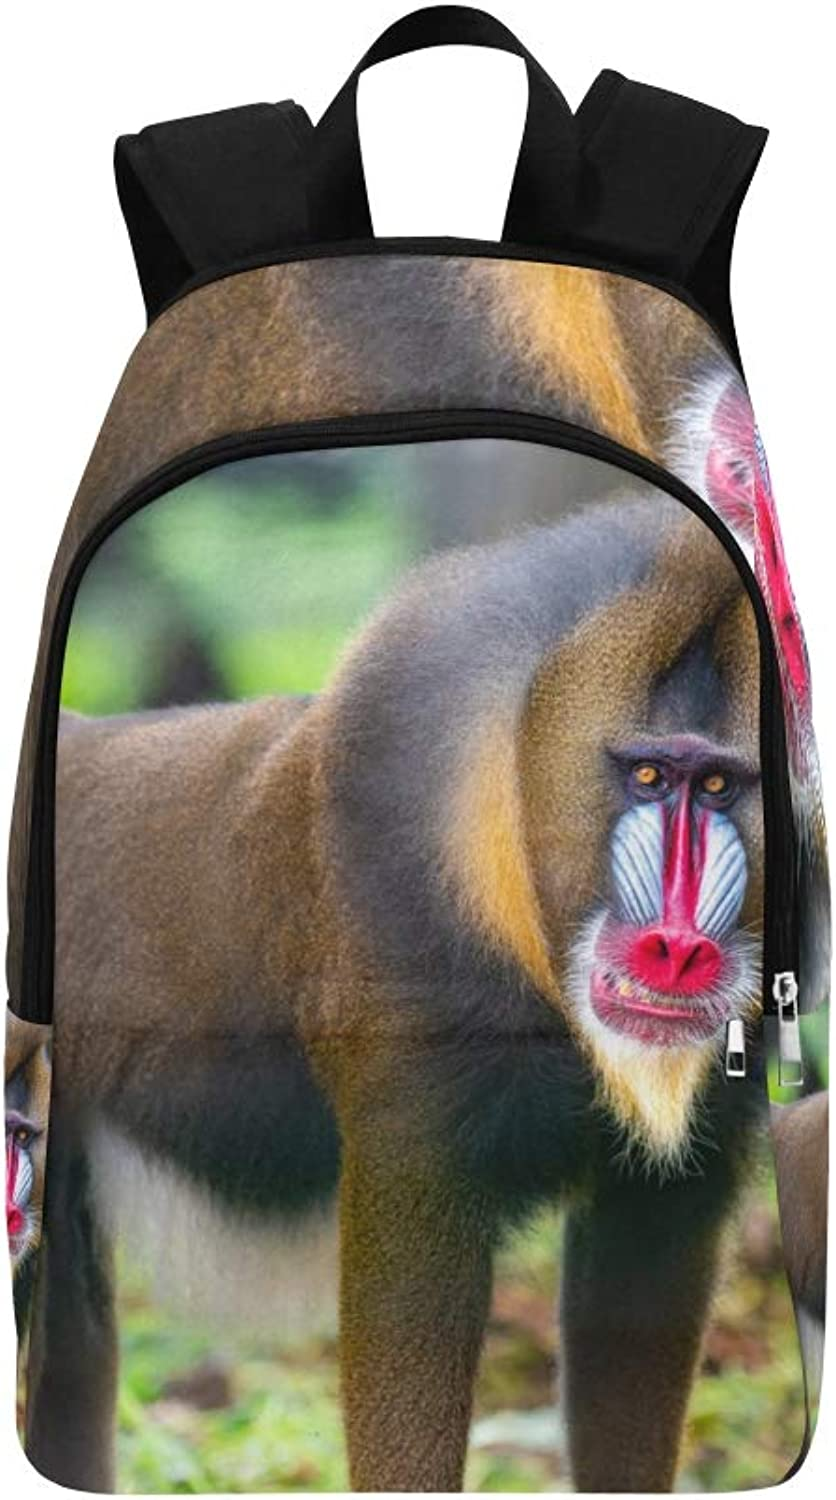 Animal Portrait Art Baboon Casual Daypack Travel Bag College School Backpack for Mens and Women